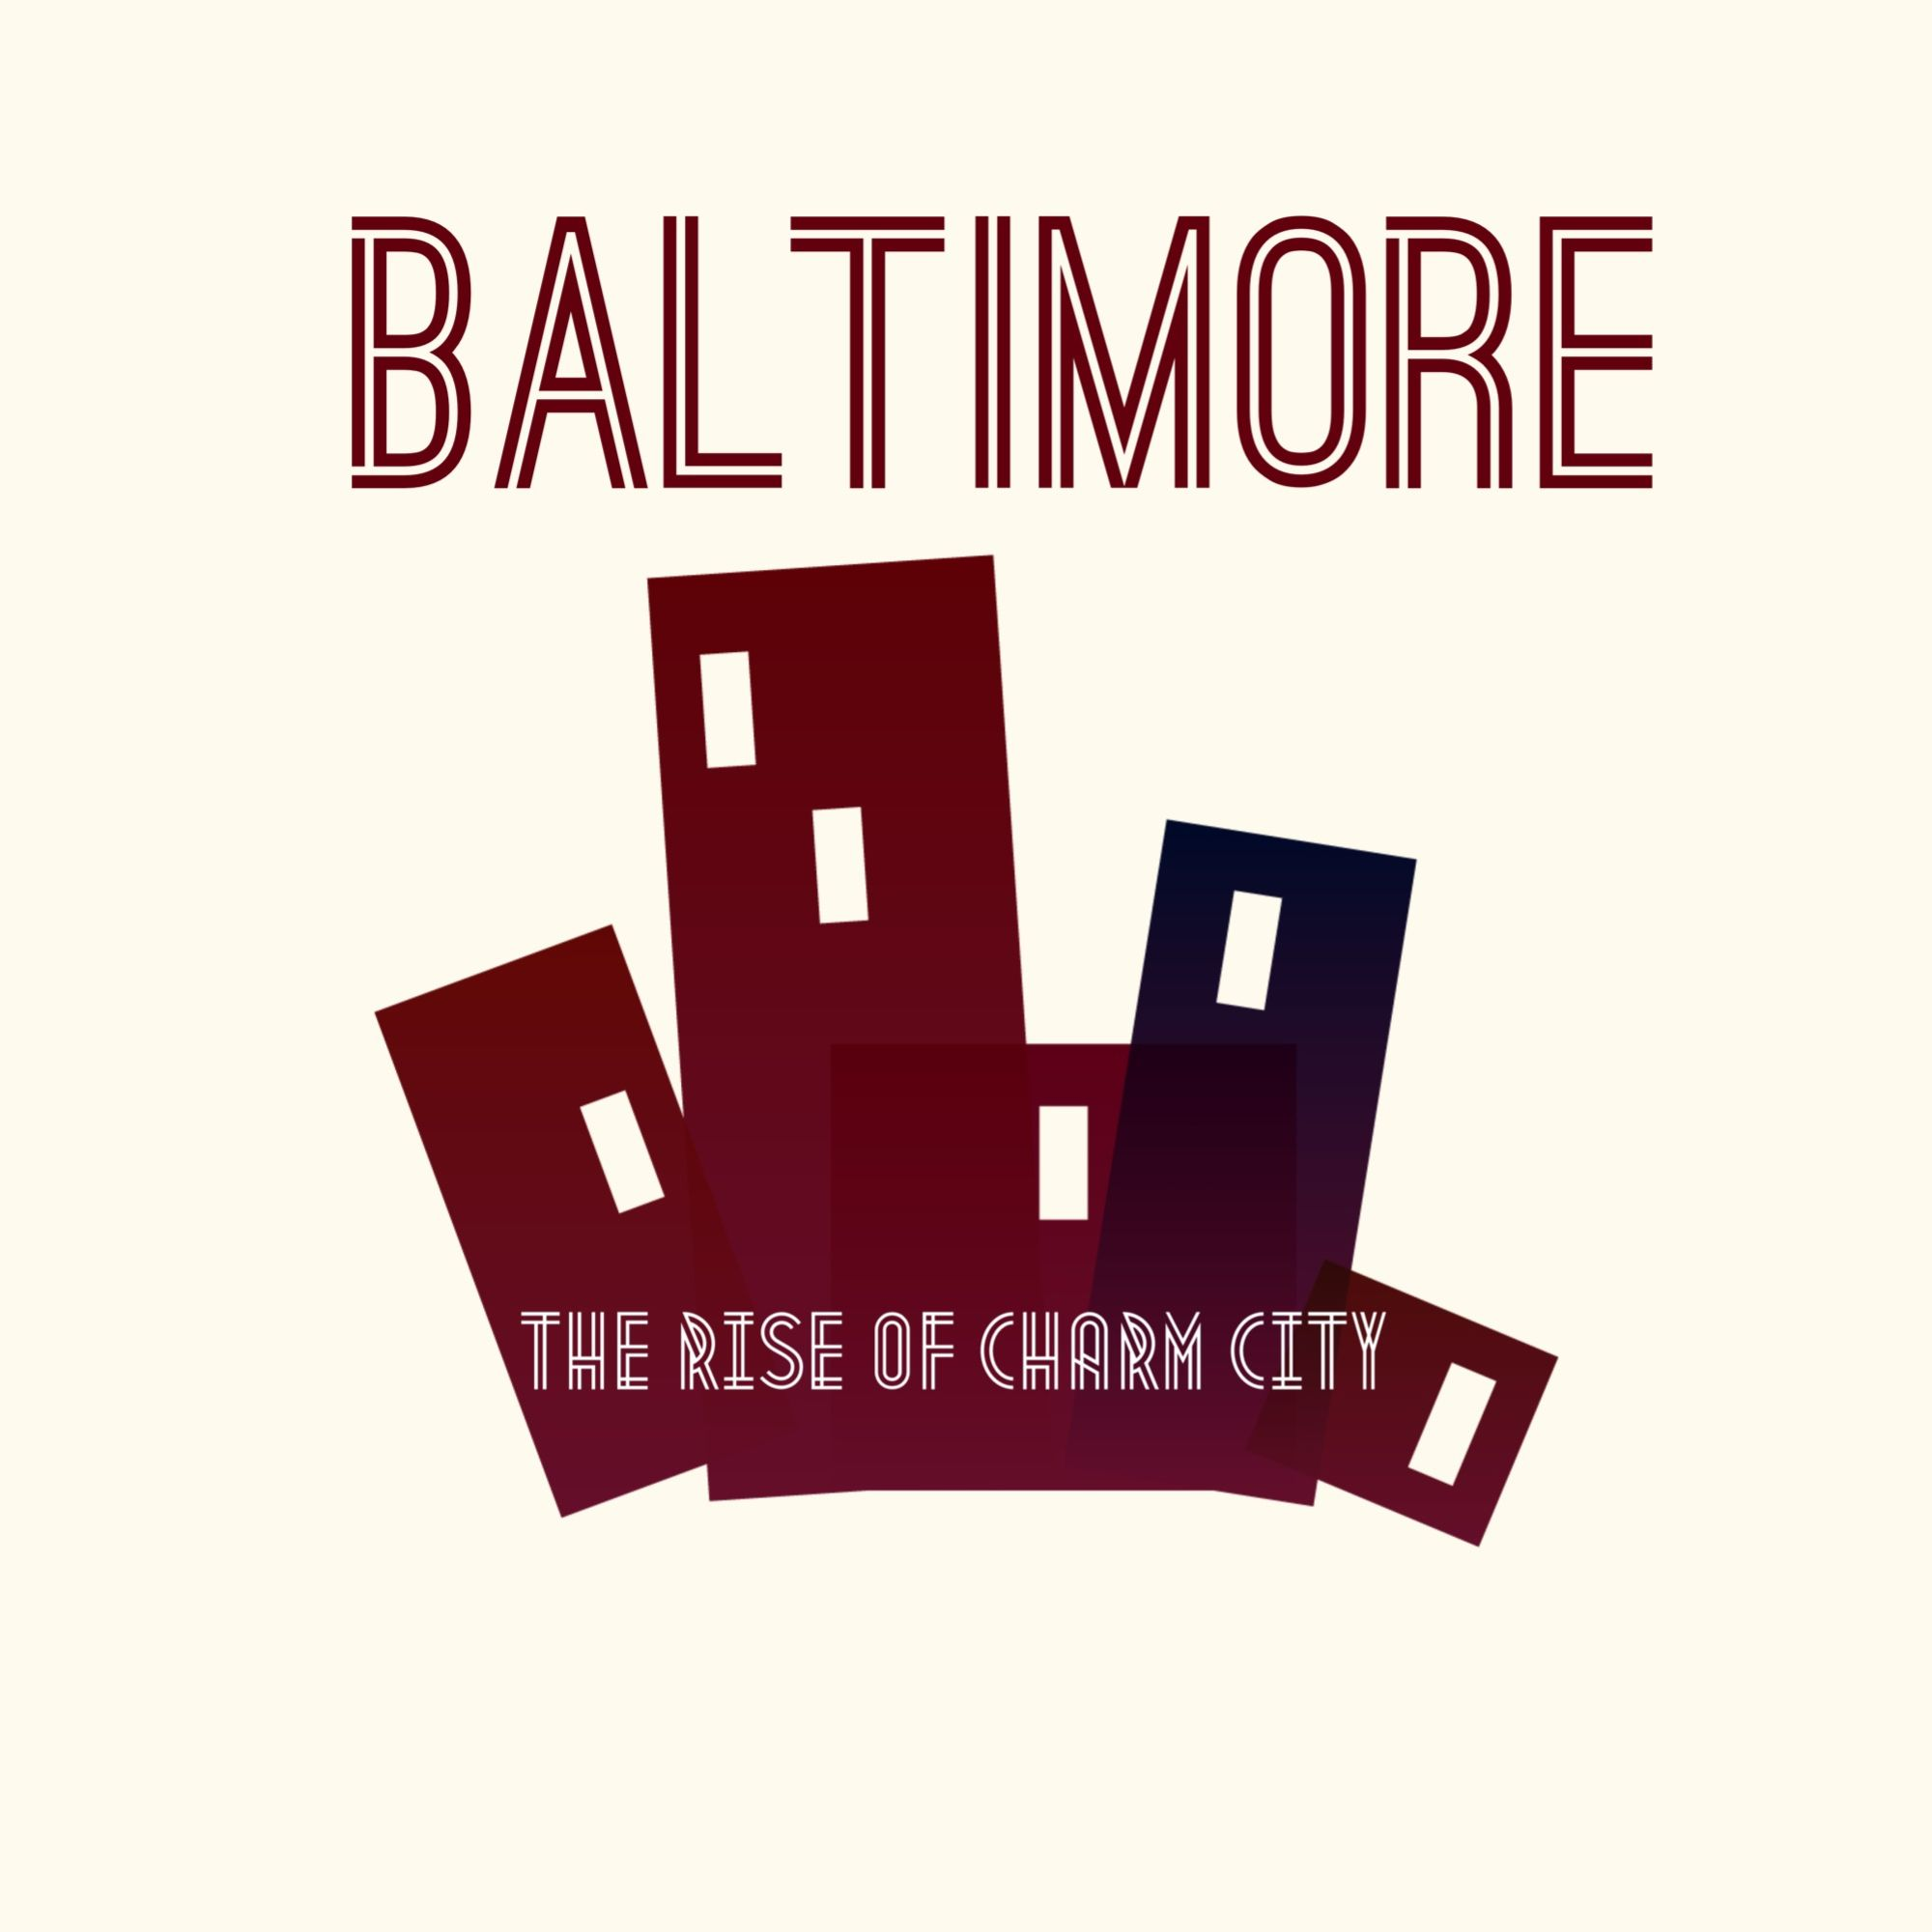 Baltimore: The Rise of Charm City